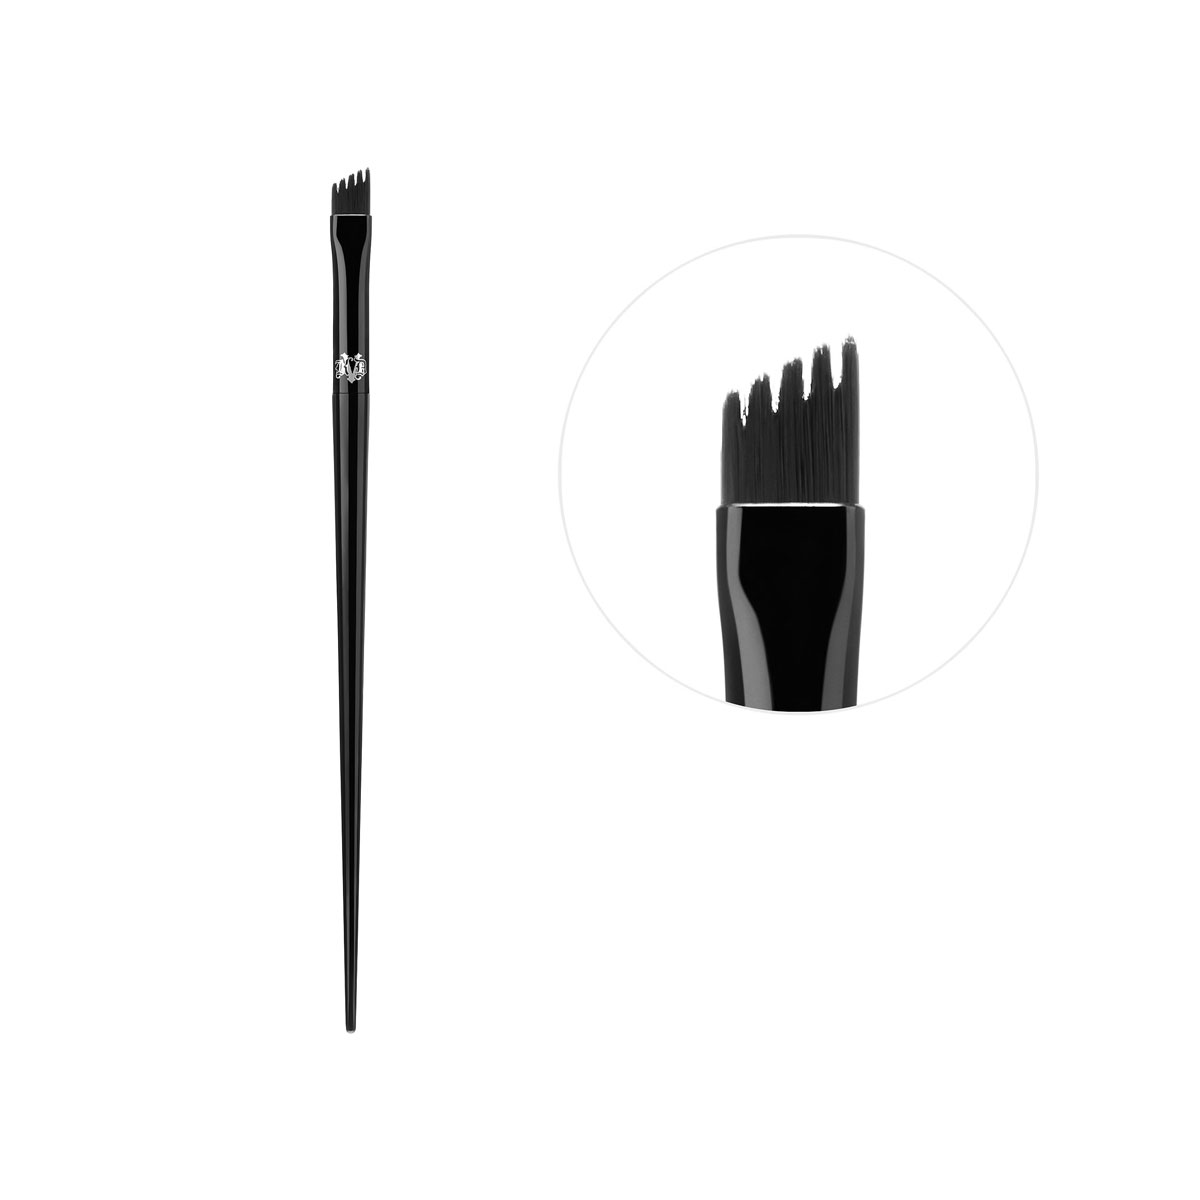 Kat Von D #75 Powder Brow Brush